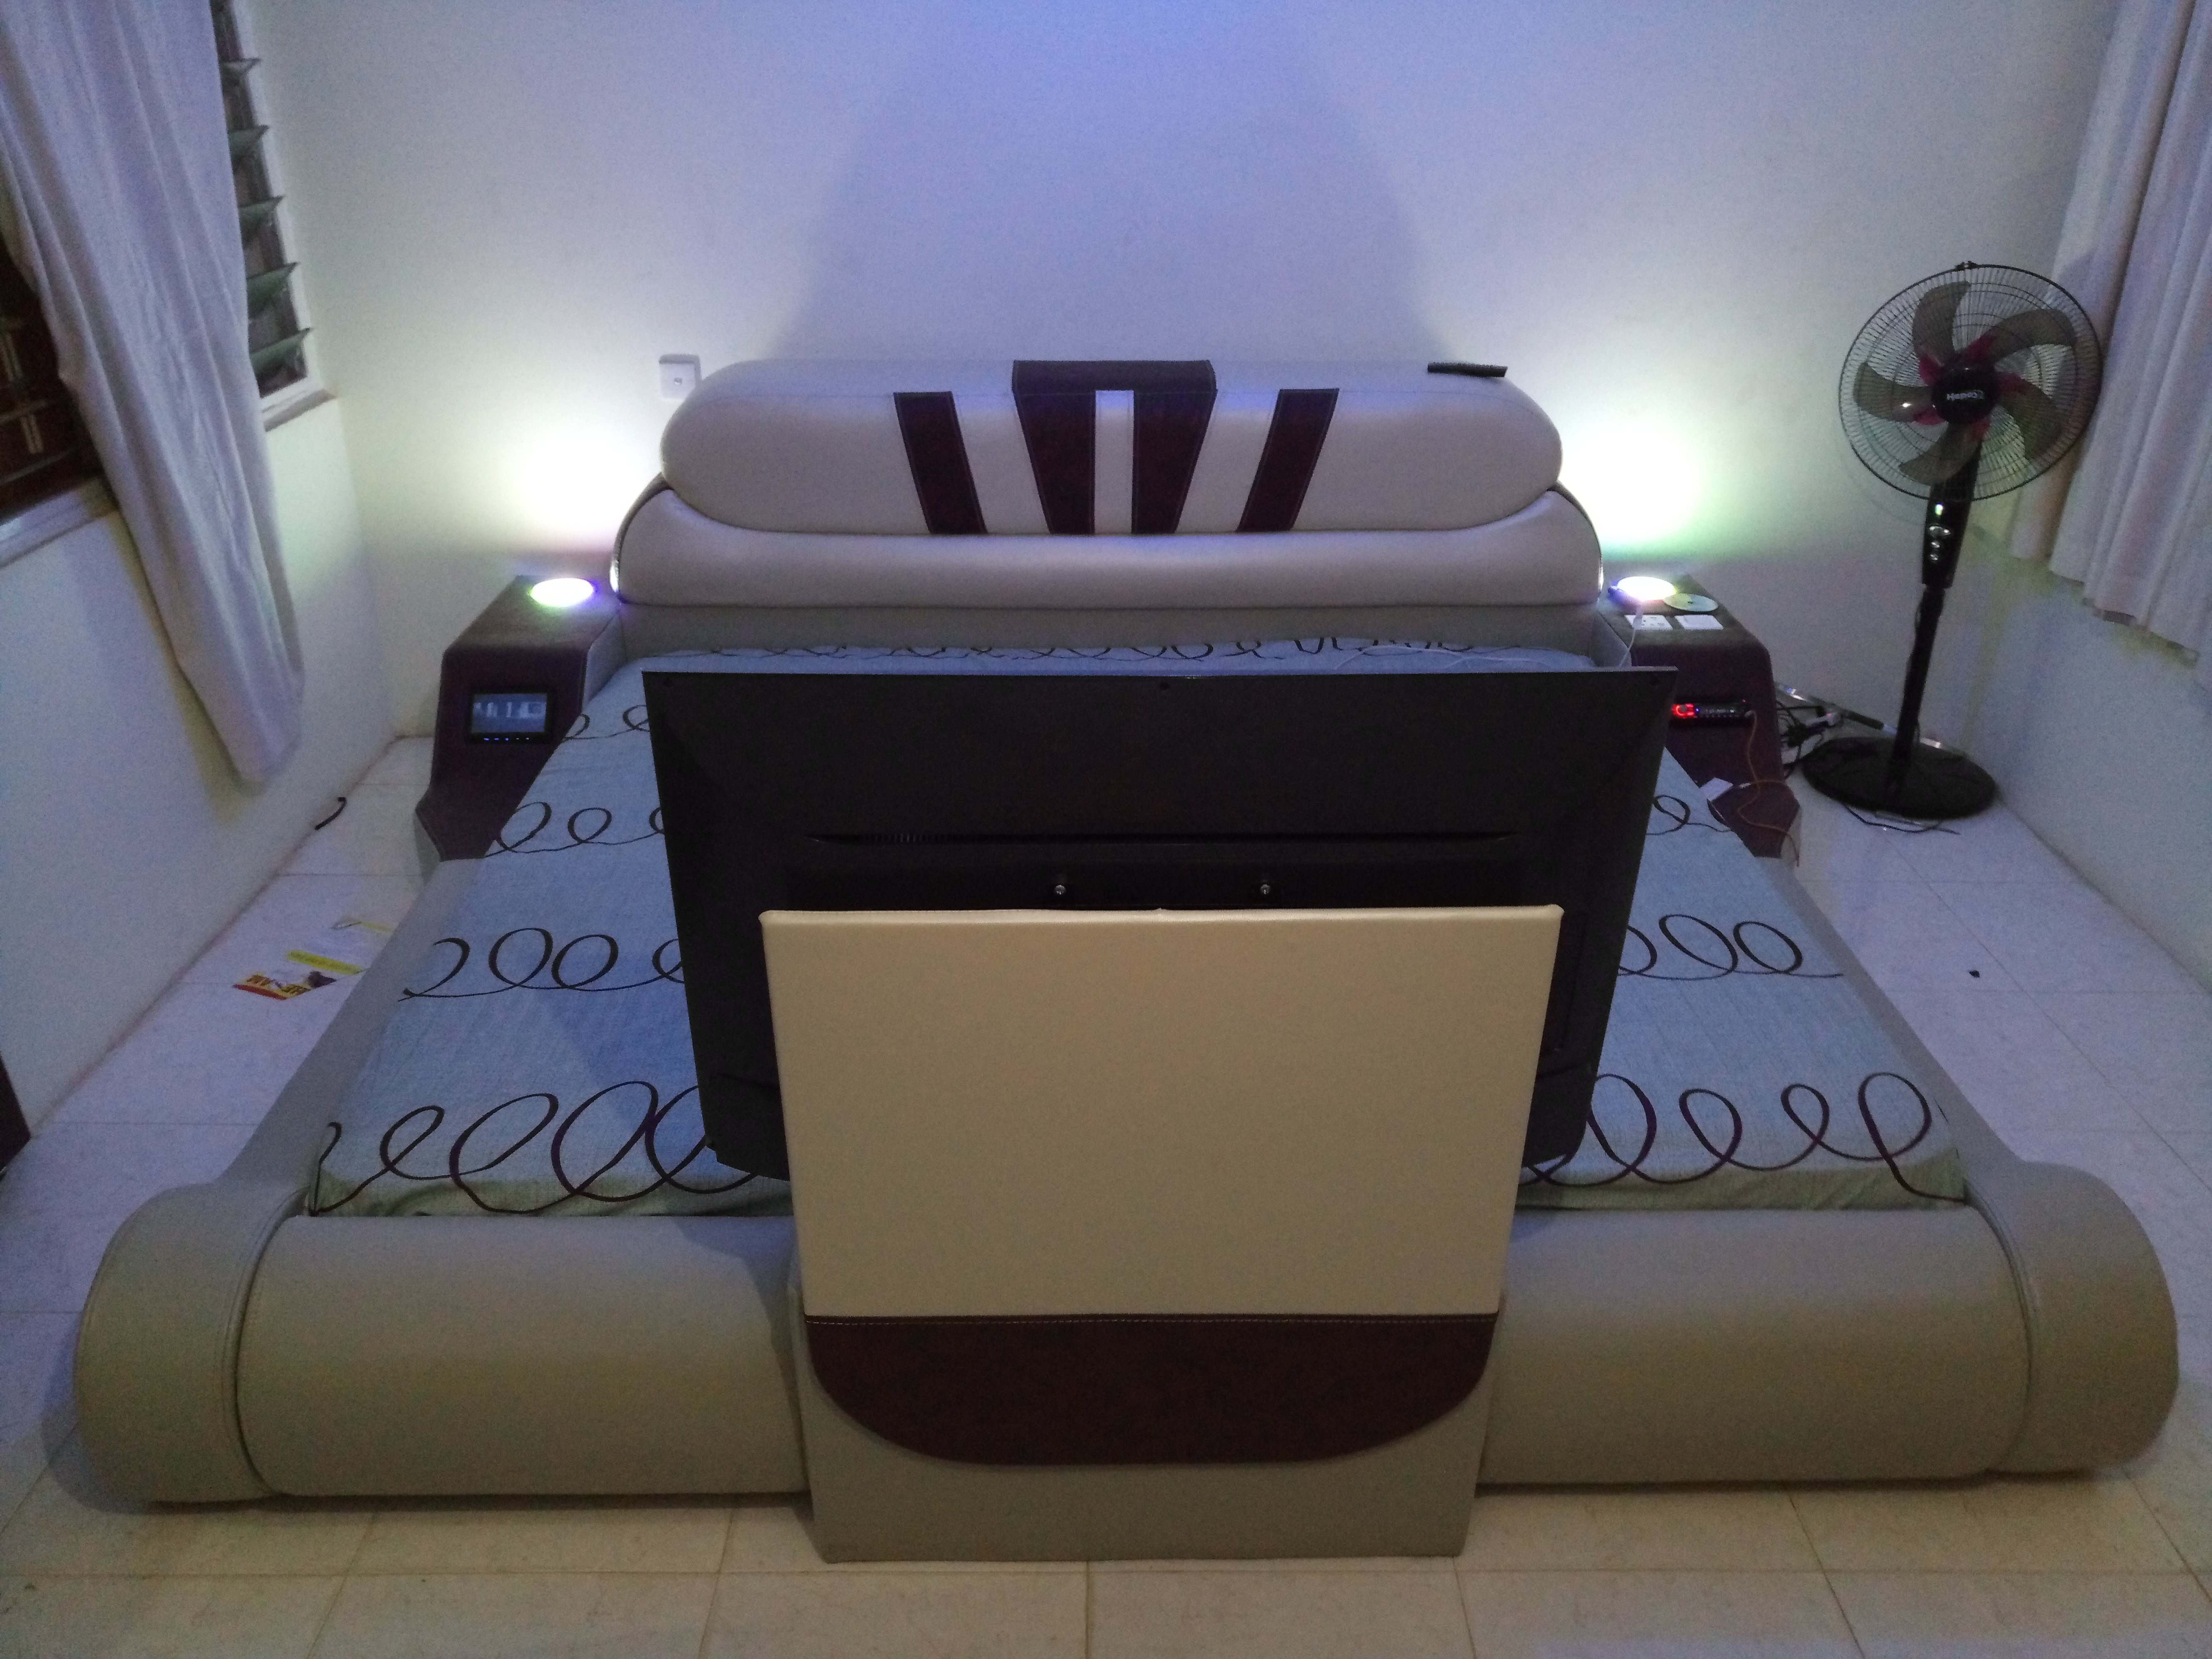 Sofa king size electronic bed powerful song system with monitor, 32 inches digital satellite television, charging system for 2 phones, you can charge your laptop, lighting system, including mattress   You can call +233244210992 or visit   www.oandpcompany.net